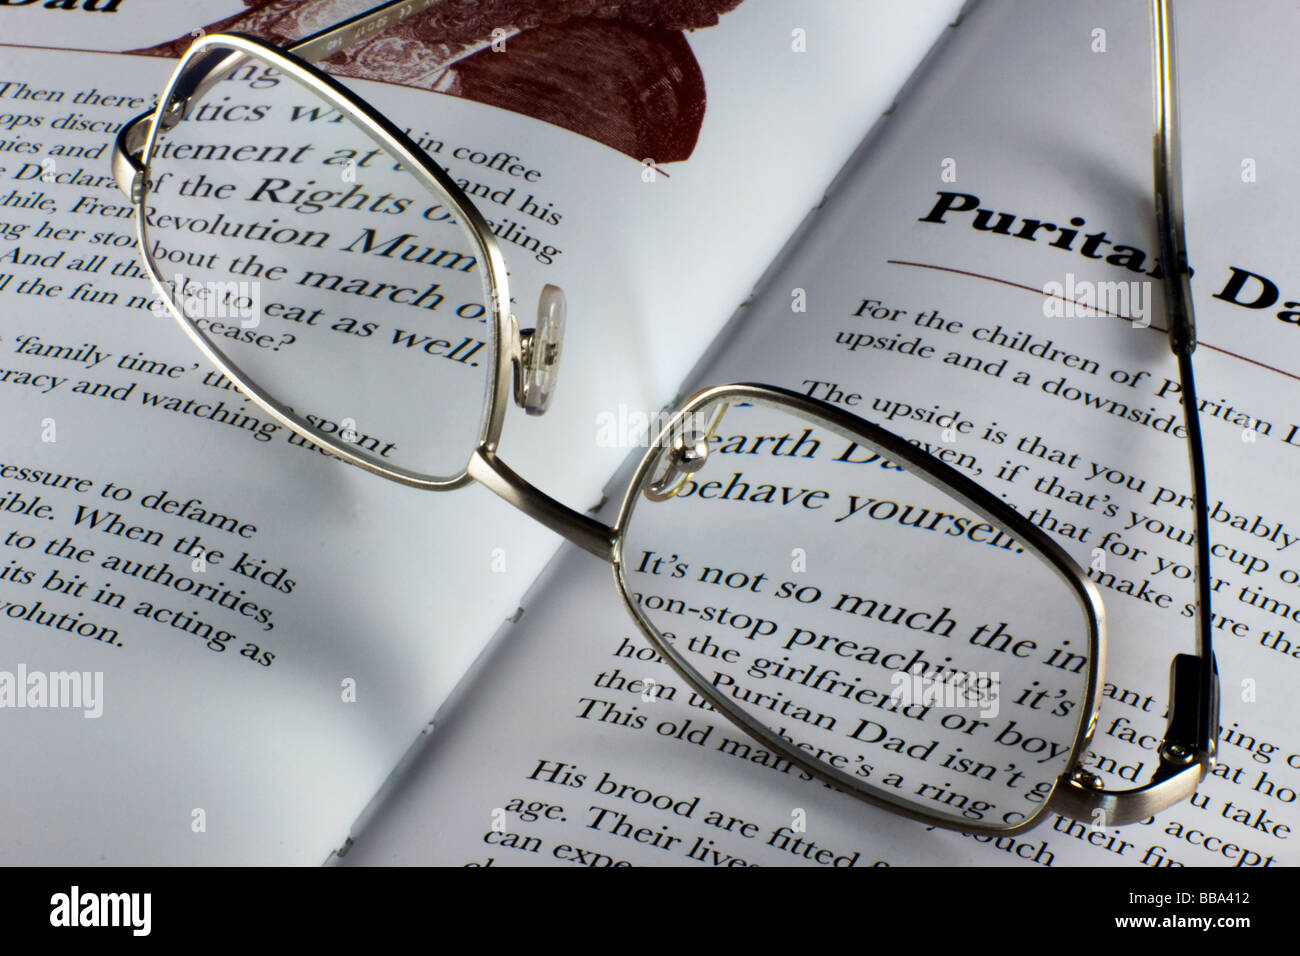 9442d3559d8 Close-up of a pair of spectacles resting on a book - Stock Image